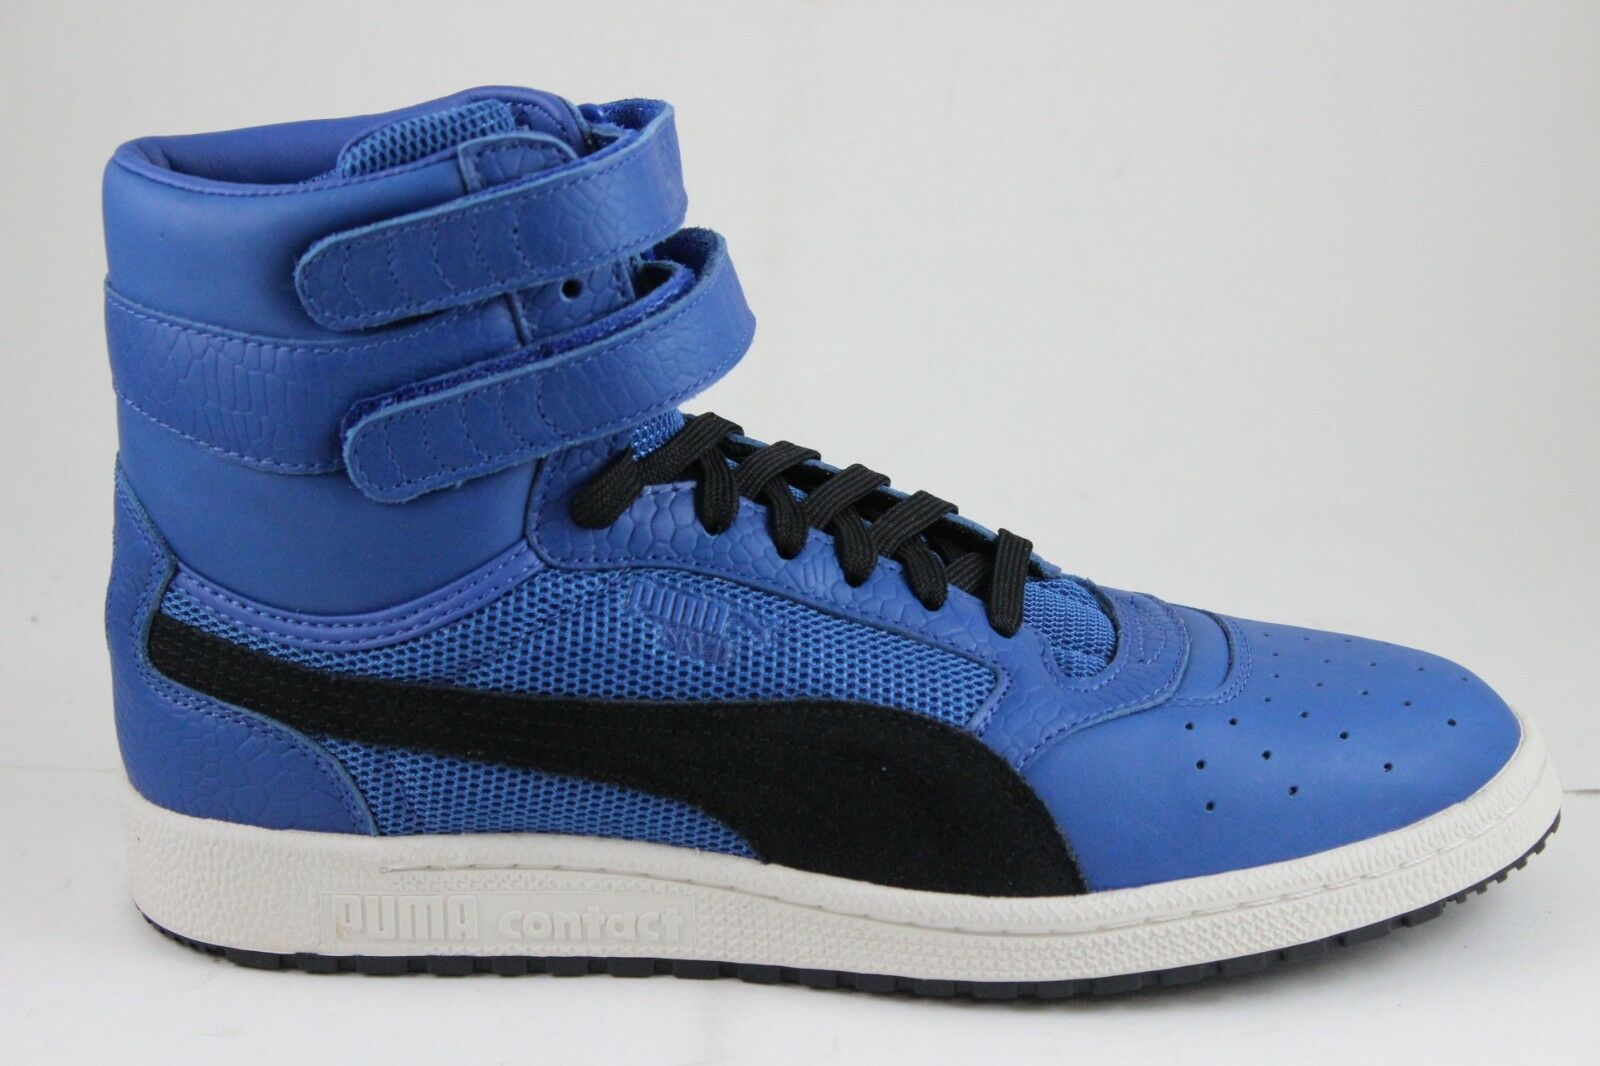 Puma Men's Sky ll 36385401 Hi Color Blocked Leather 36385401 ll Lapis Blue/Black New In Box 6344fb